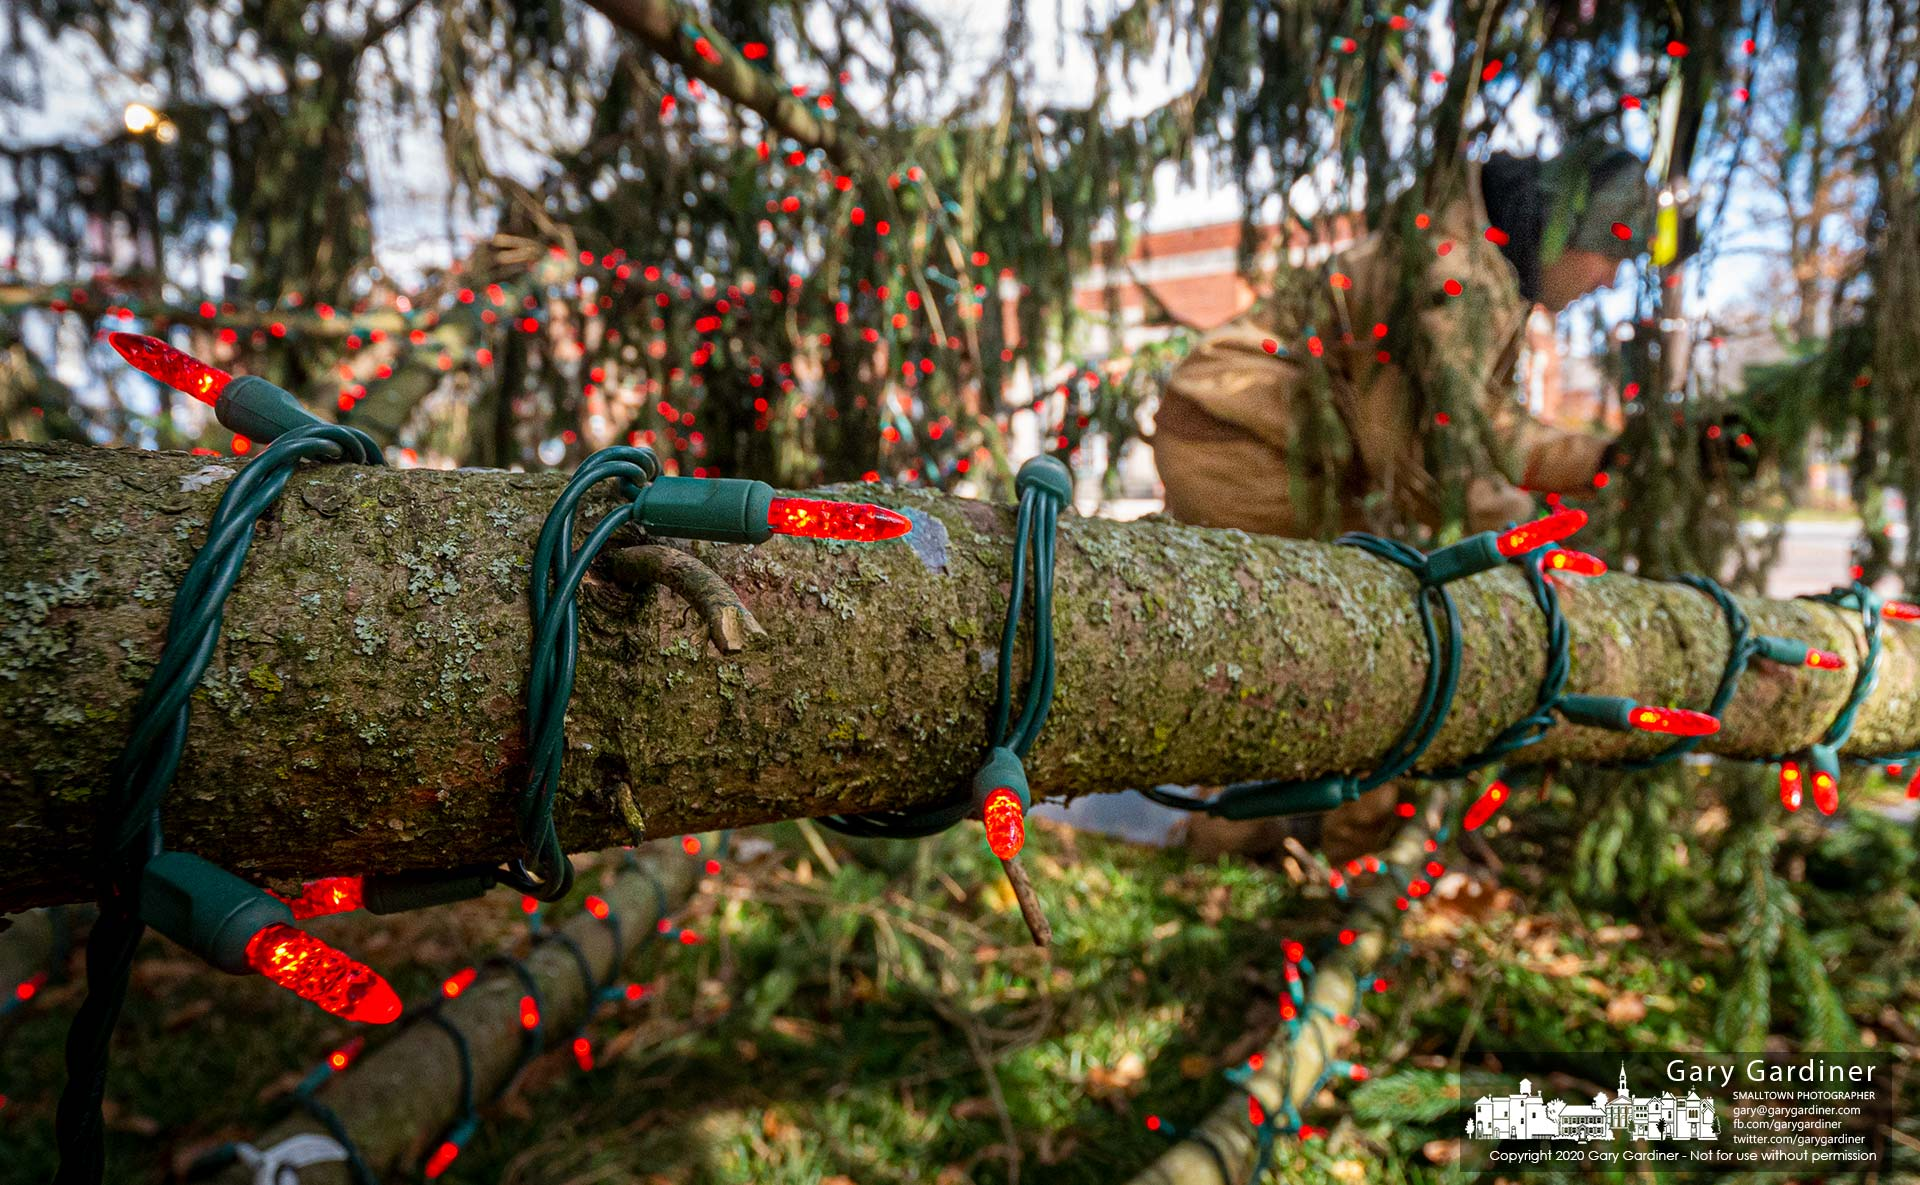 A city worker attaches red lights to the lower limbs of the holiday tree installed in front of city hall. My Final Photo for Nov. 17, 2020